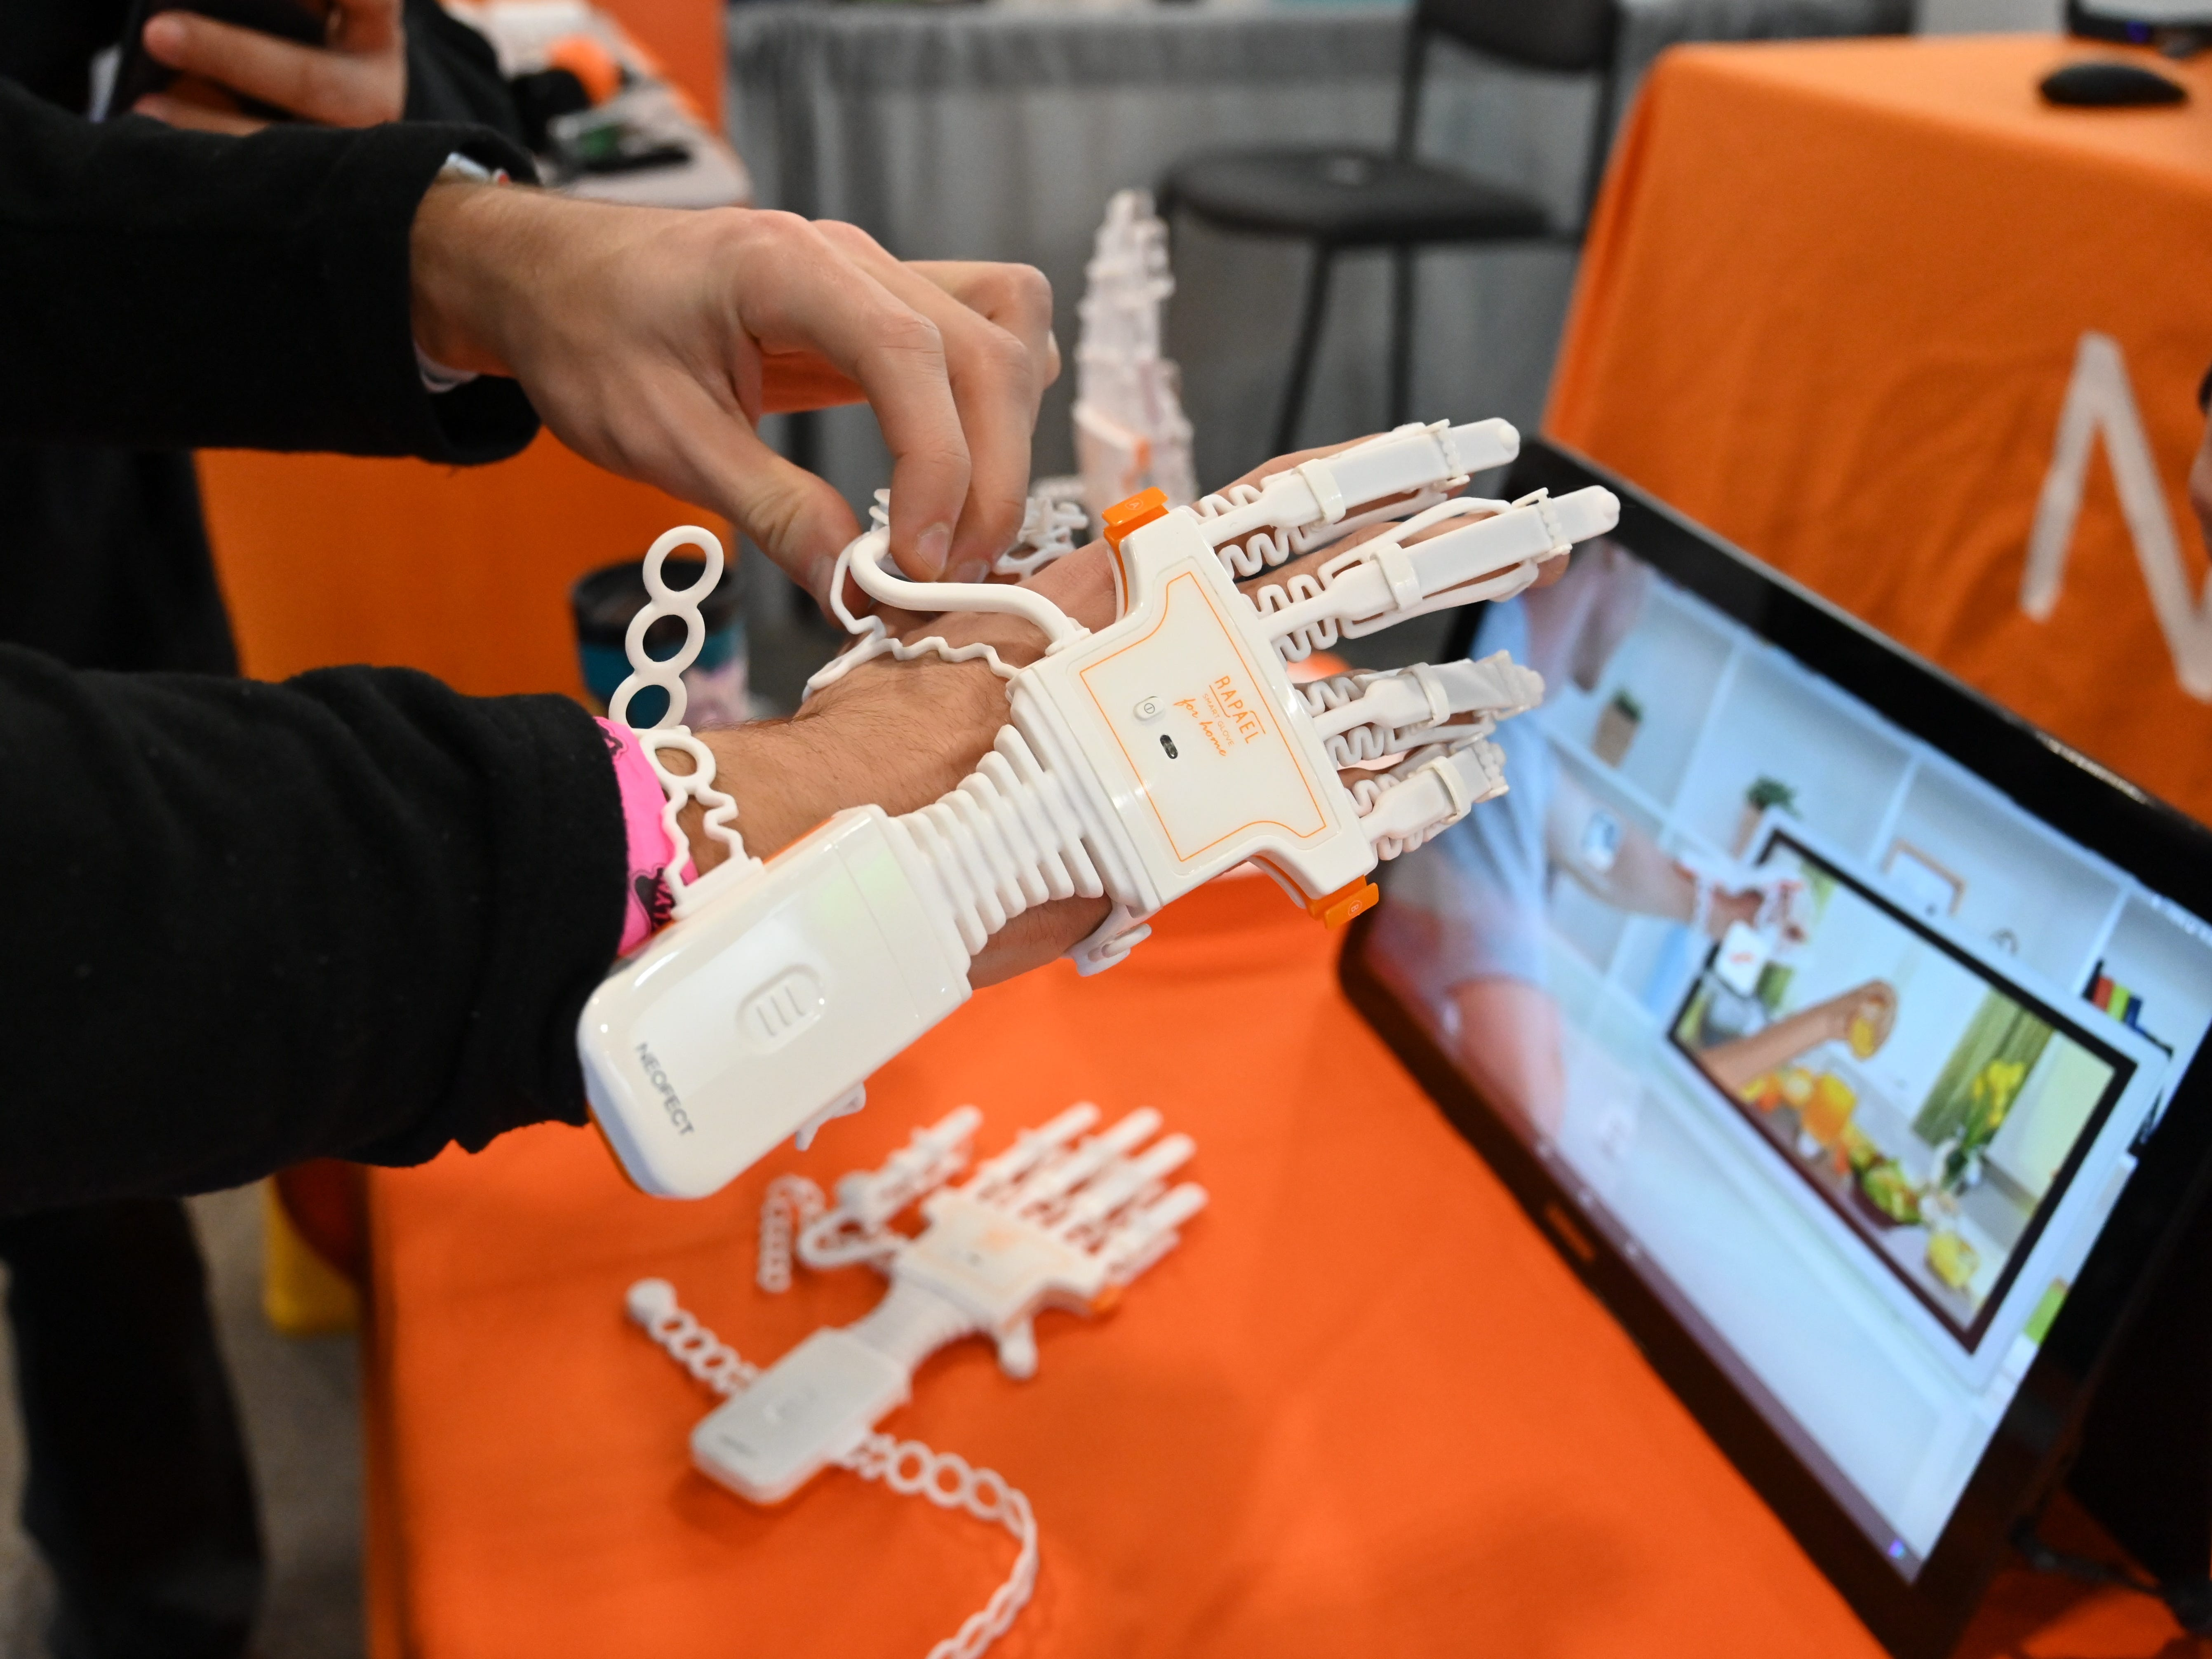 The RAPAEL Smart Glove is an interactive home rehabilitation therapy for stroke survivors to regain hand function.